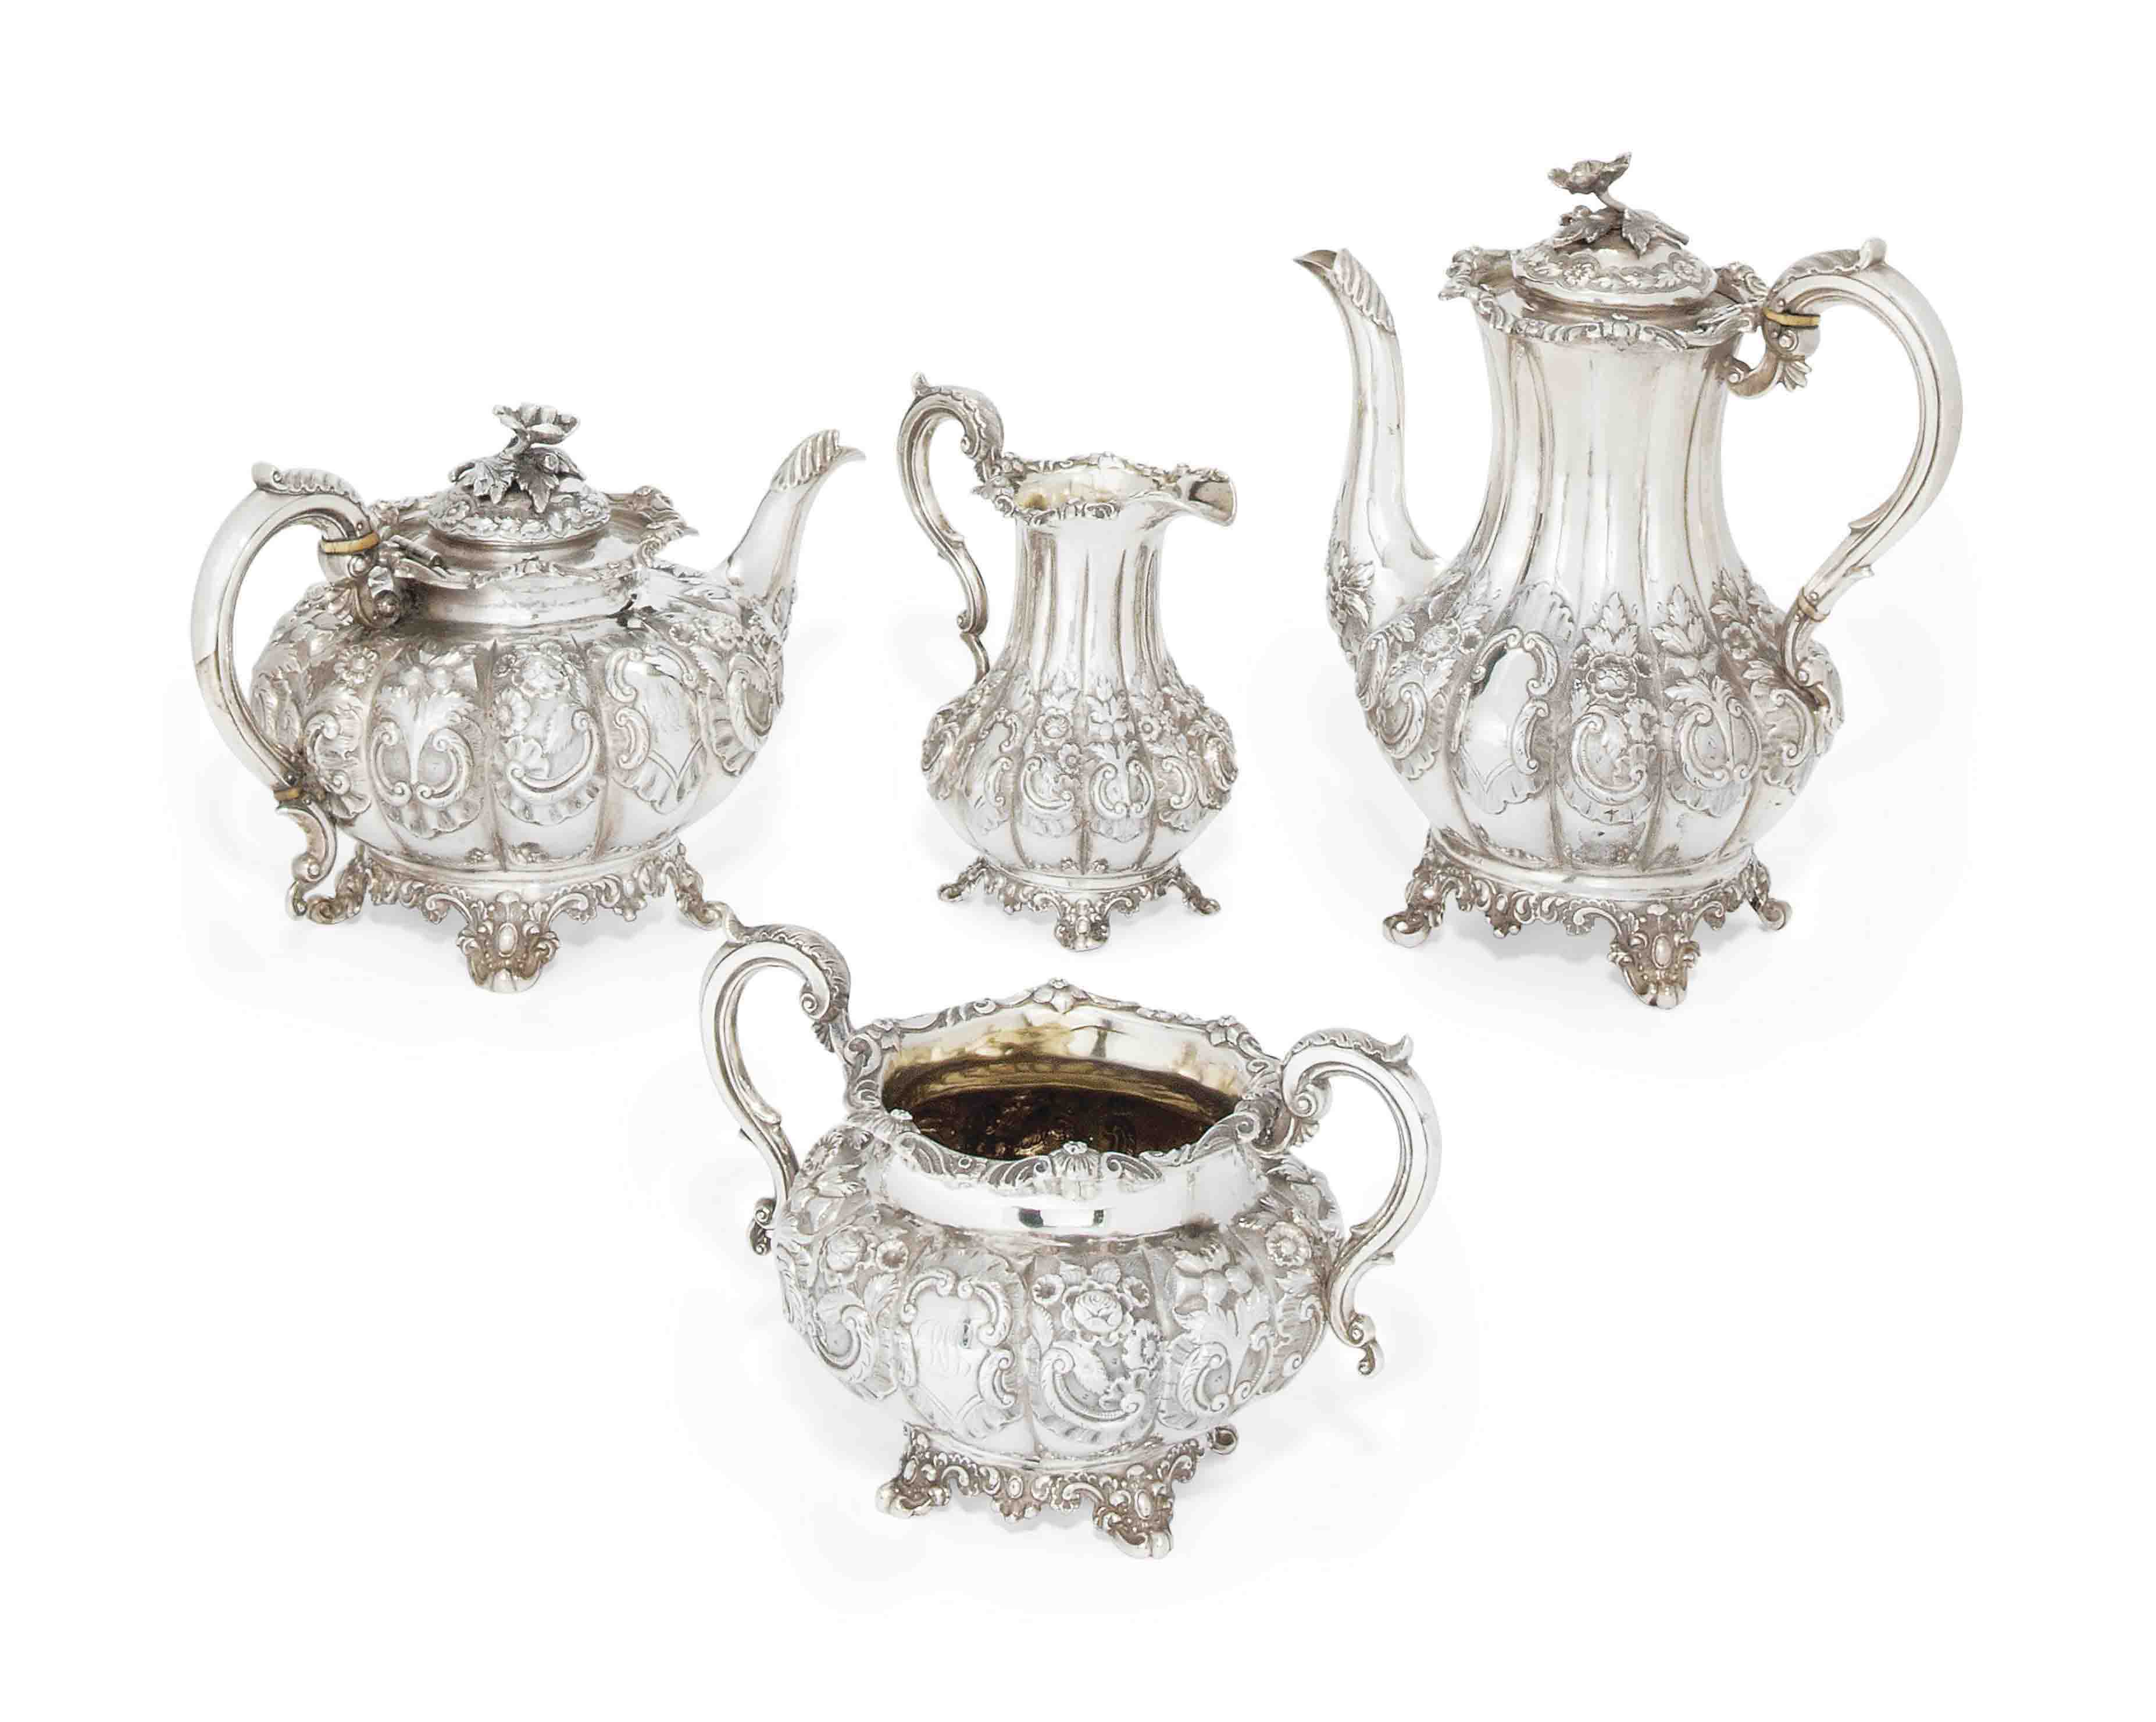 A MATCHED VICTORIAN SILVER FOUR-PIECE TEA/COFFEE SET